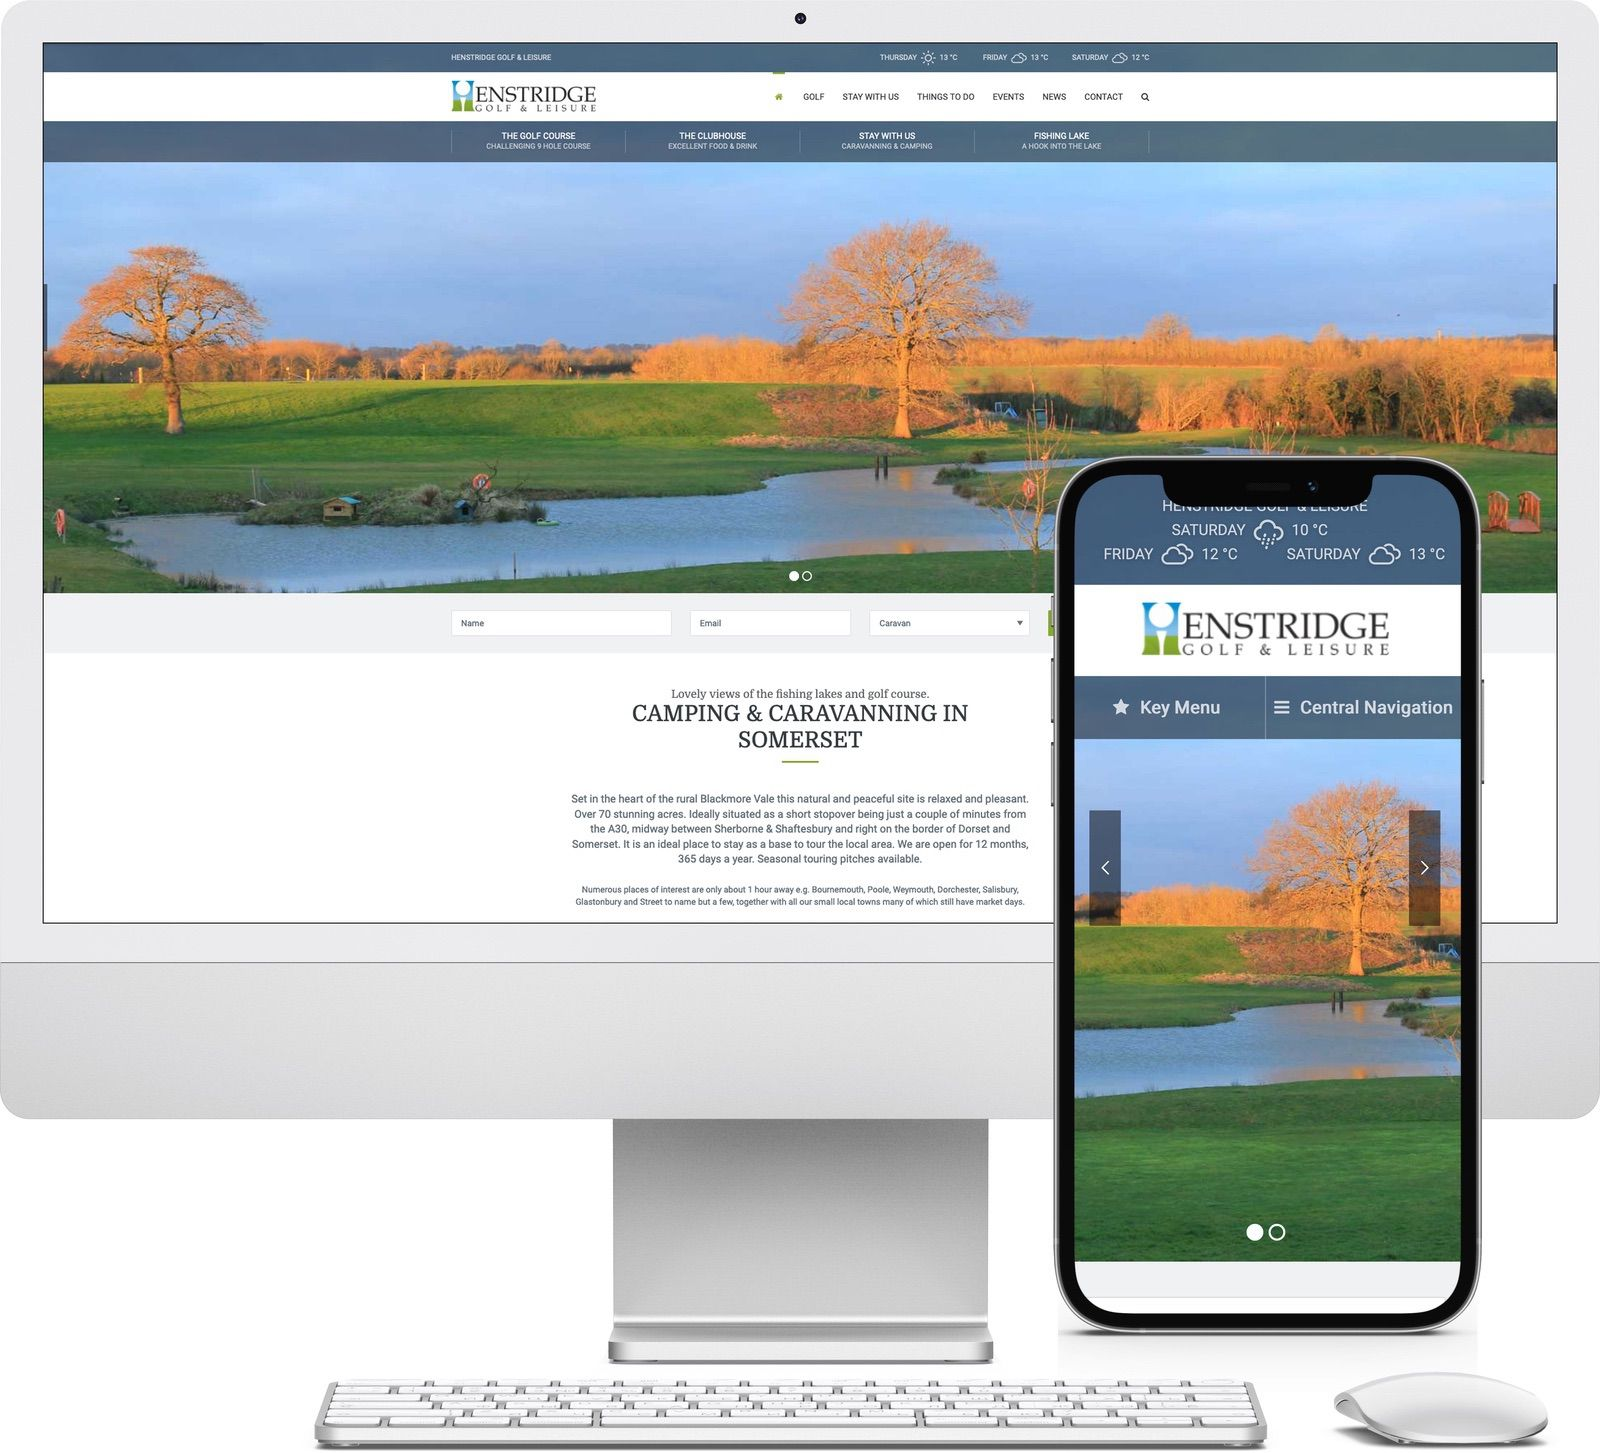 Henstridge Golf and Leisure Centre iMac and iPhone mockup image - Riotspace Creative